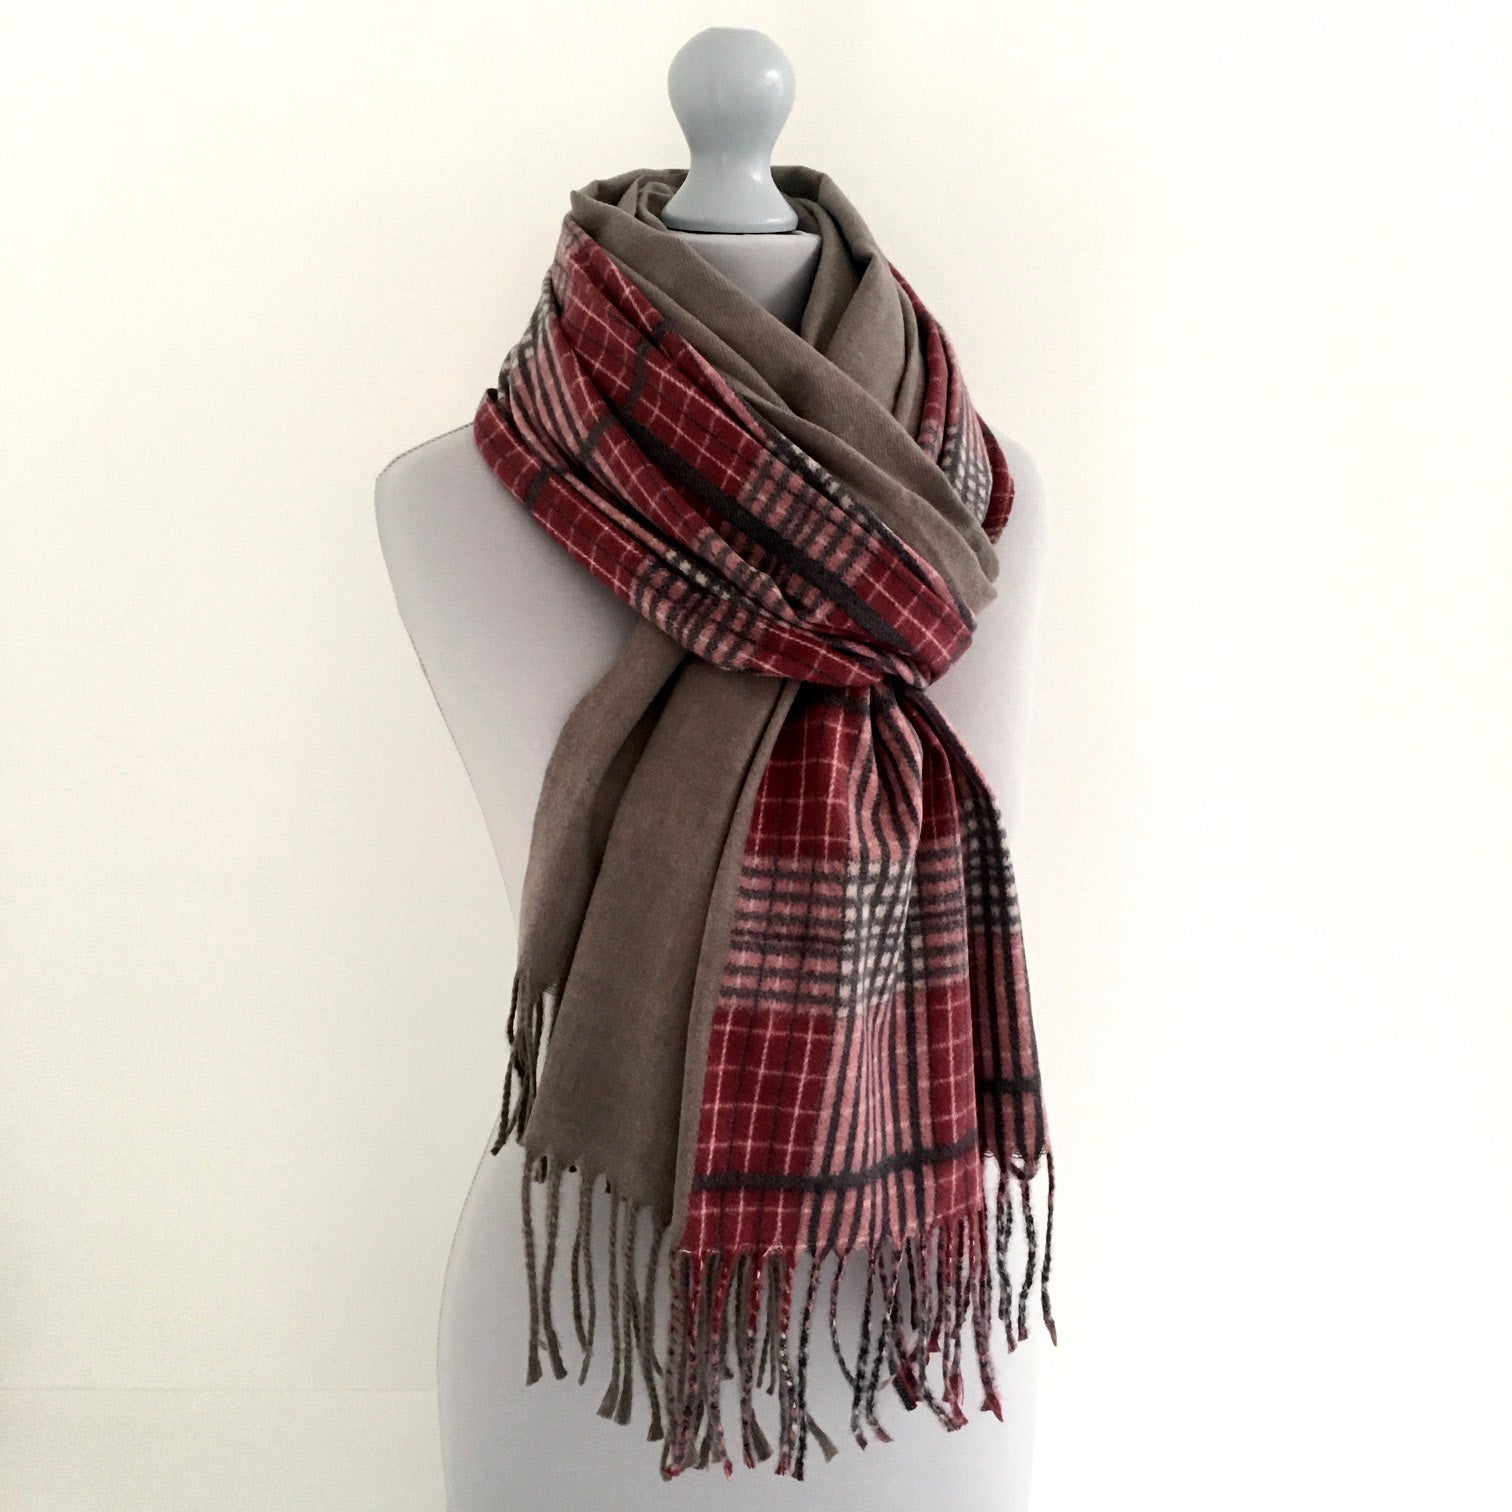 A-SHU GREY LONG OVERSIZED BLOCK PRINT TARTAN CHECKED SHAWL SCARF - A-SHU.CO.UK